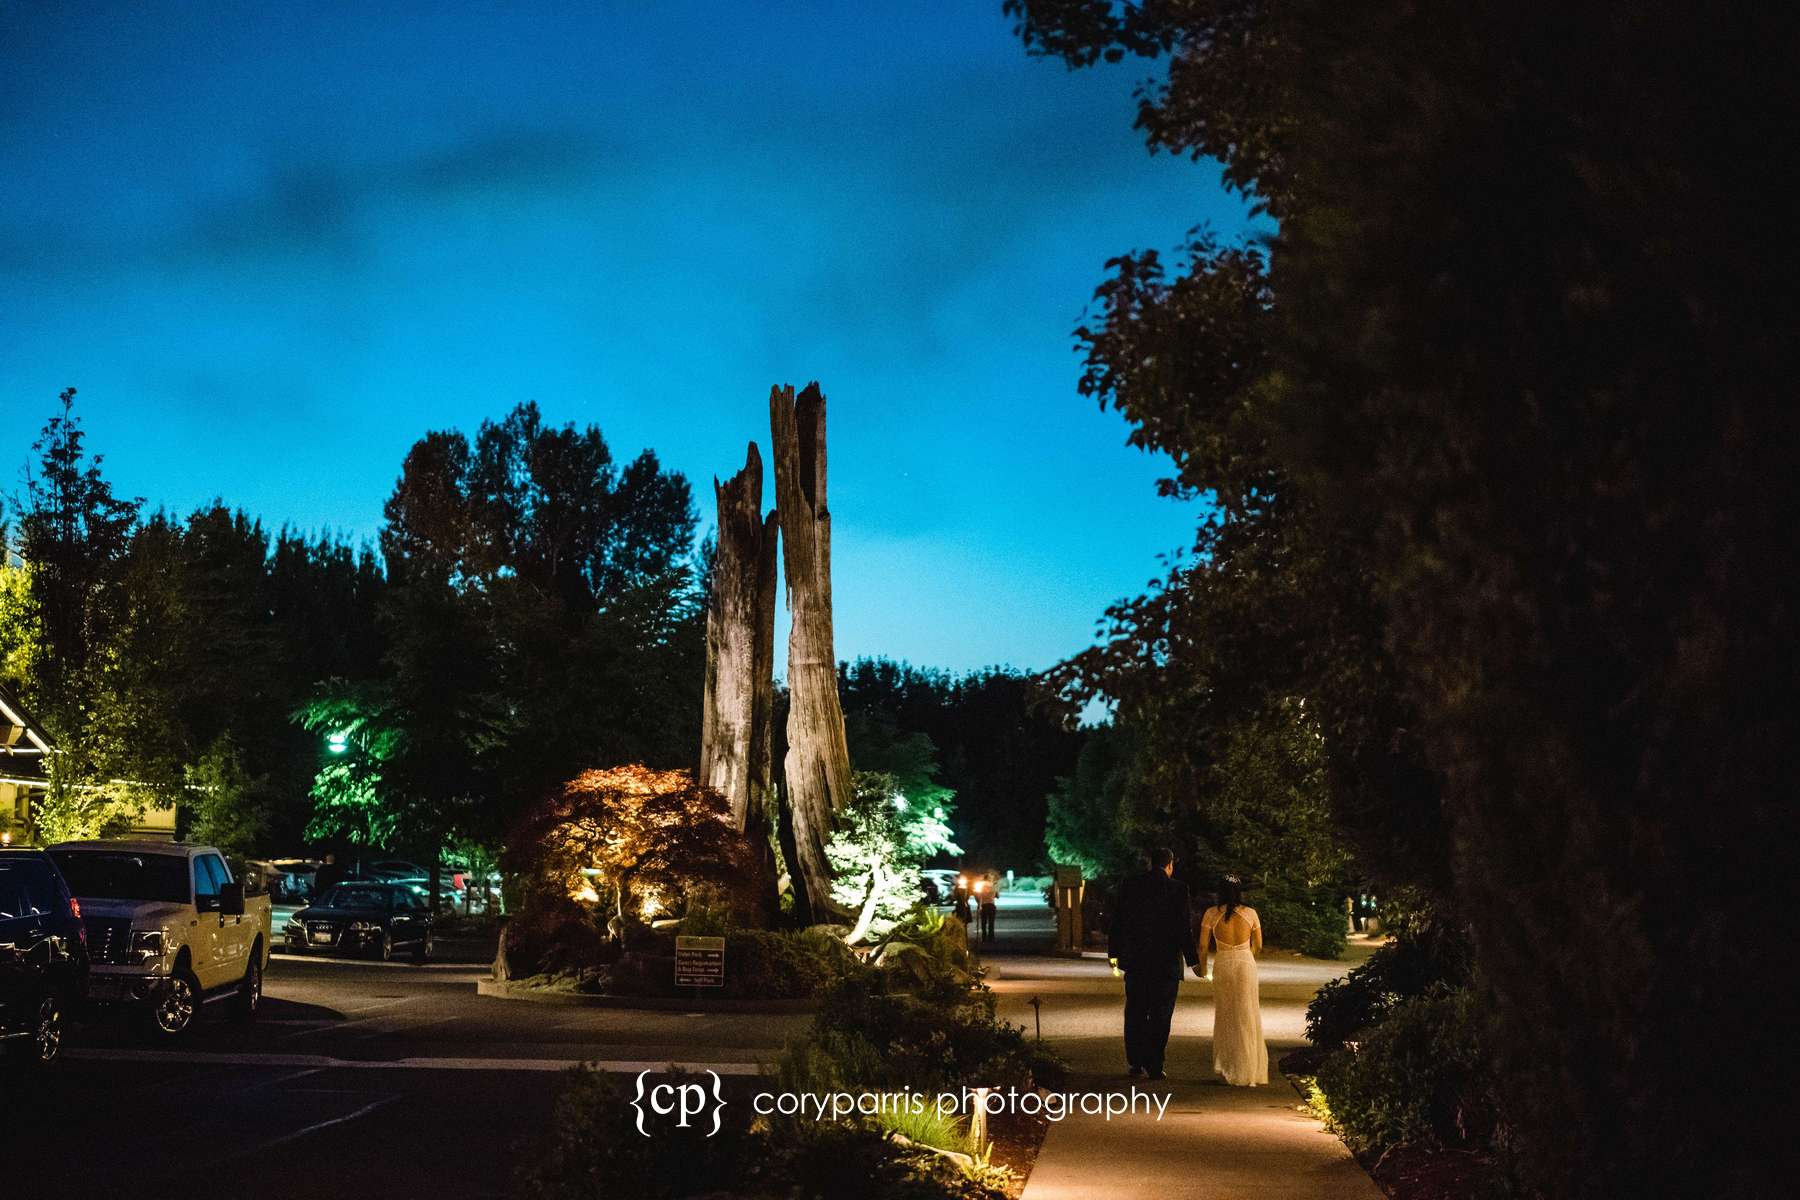 922-Willows-Lodge-Wedding-Photography-Woodinville.jpg